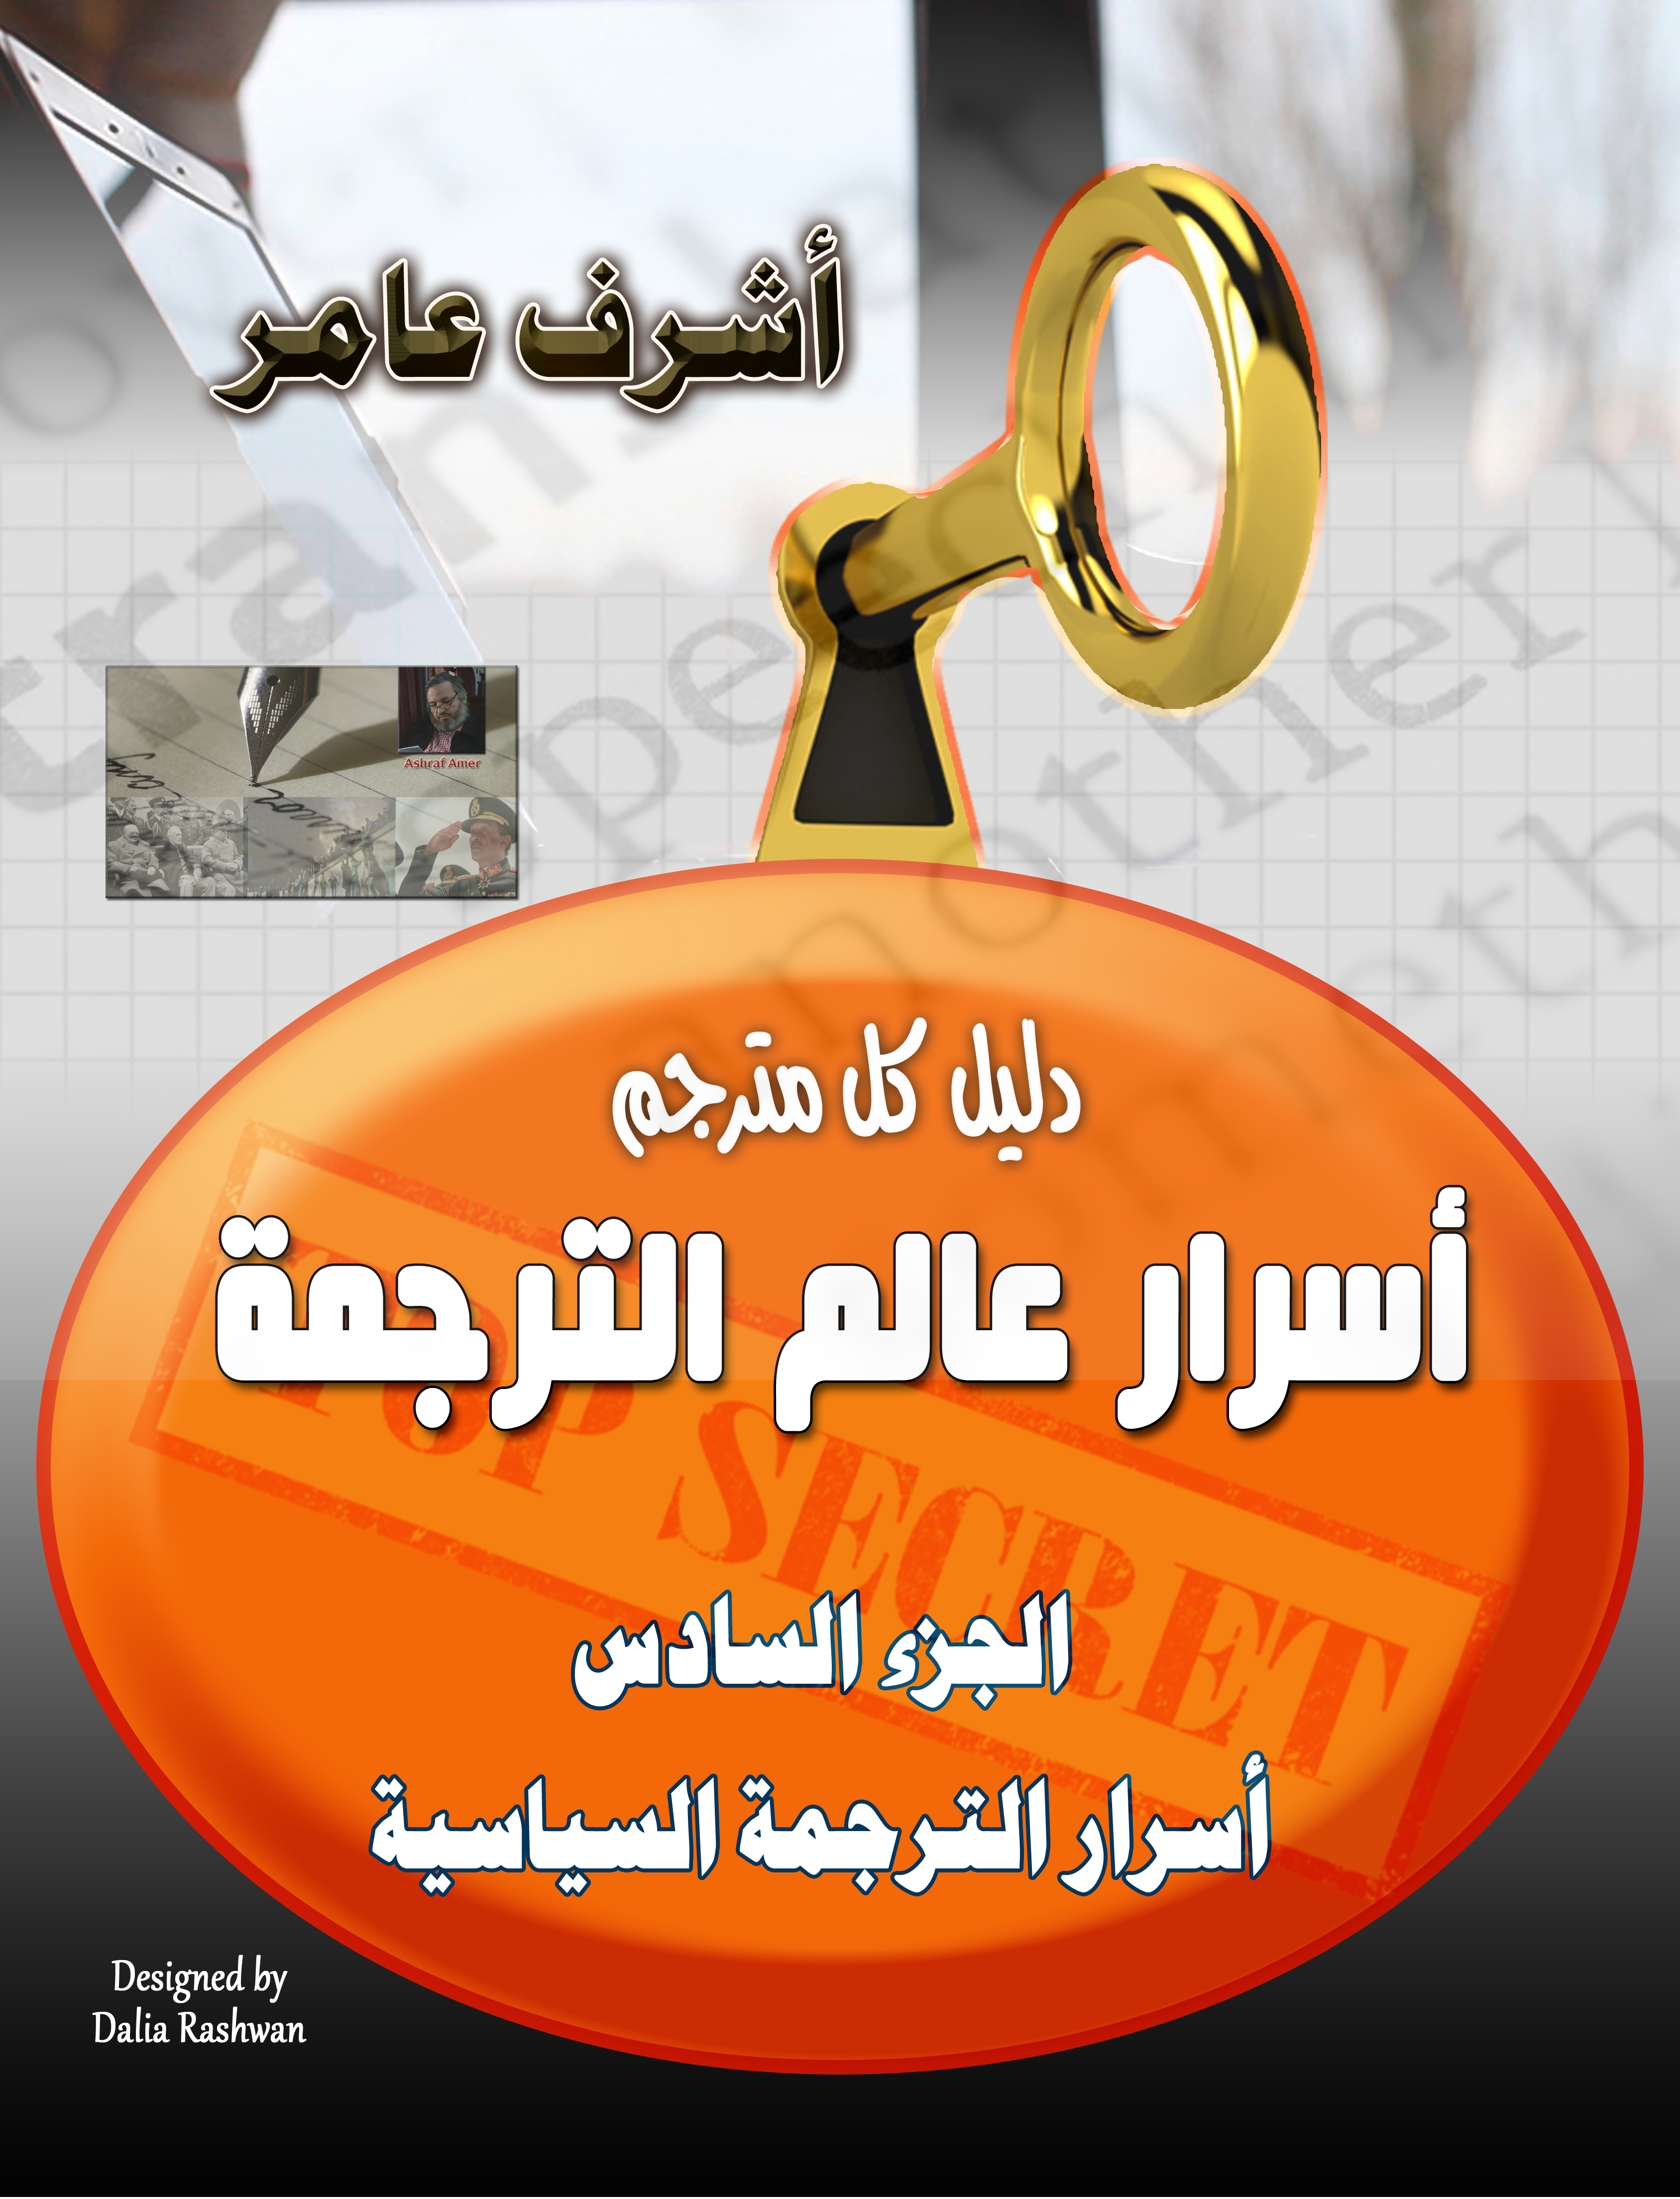 Translation_Secrets_Ashraf_Amer_Part_06_Front_Cover_2019_11_27